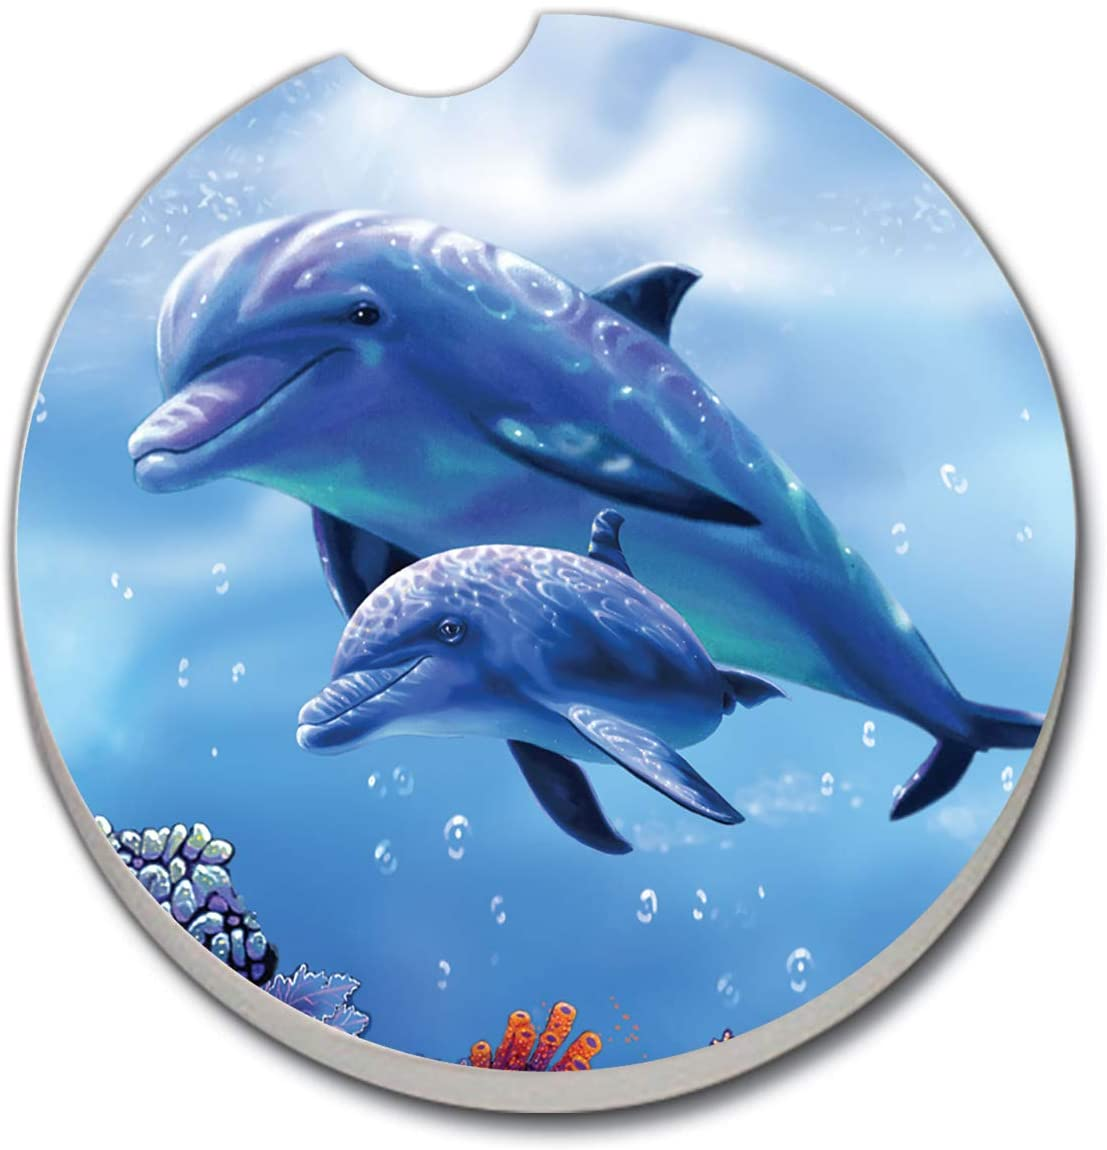 CounterArt Absorbent Stoneware Car Coaster, Dolphin with Baby, Set of 2